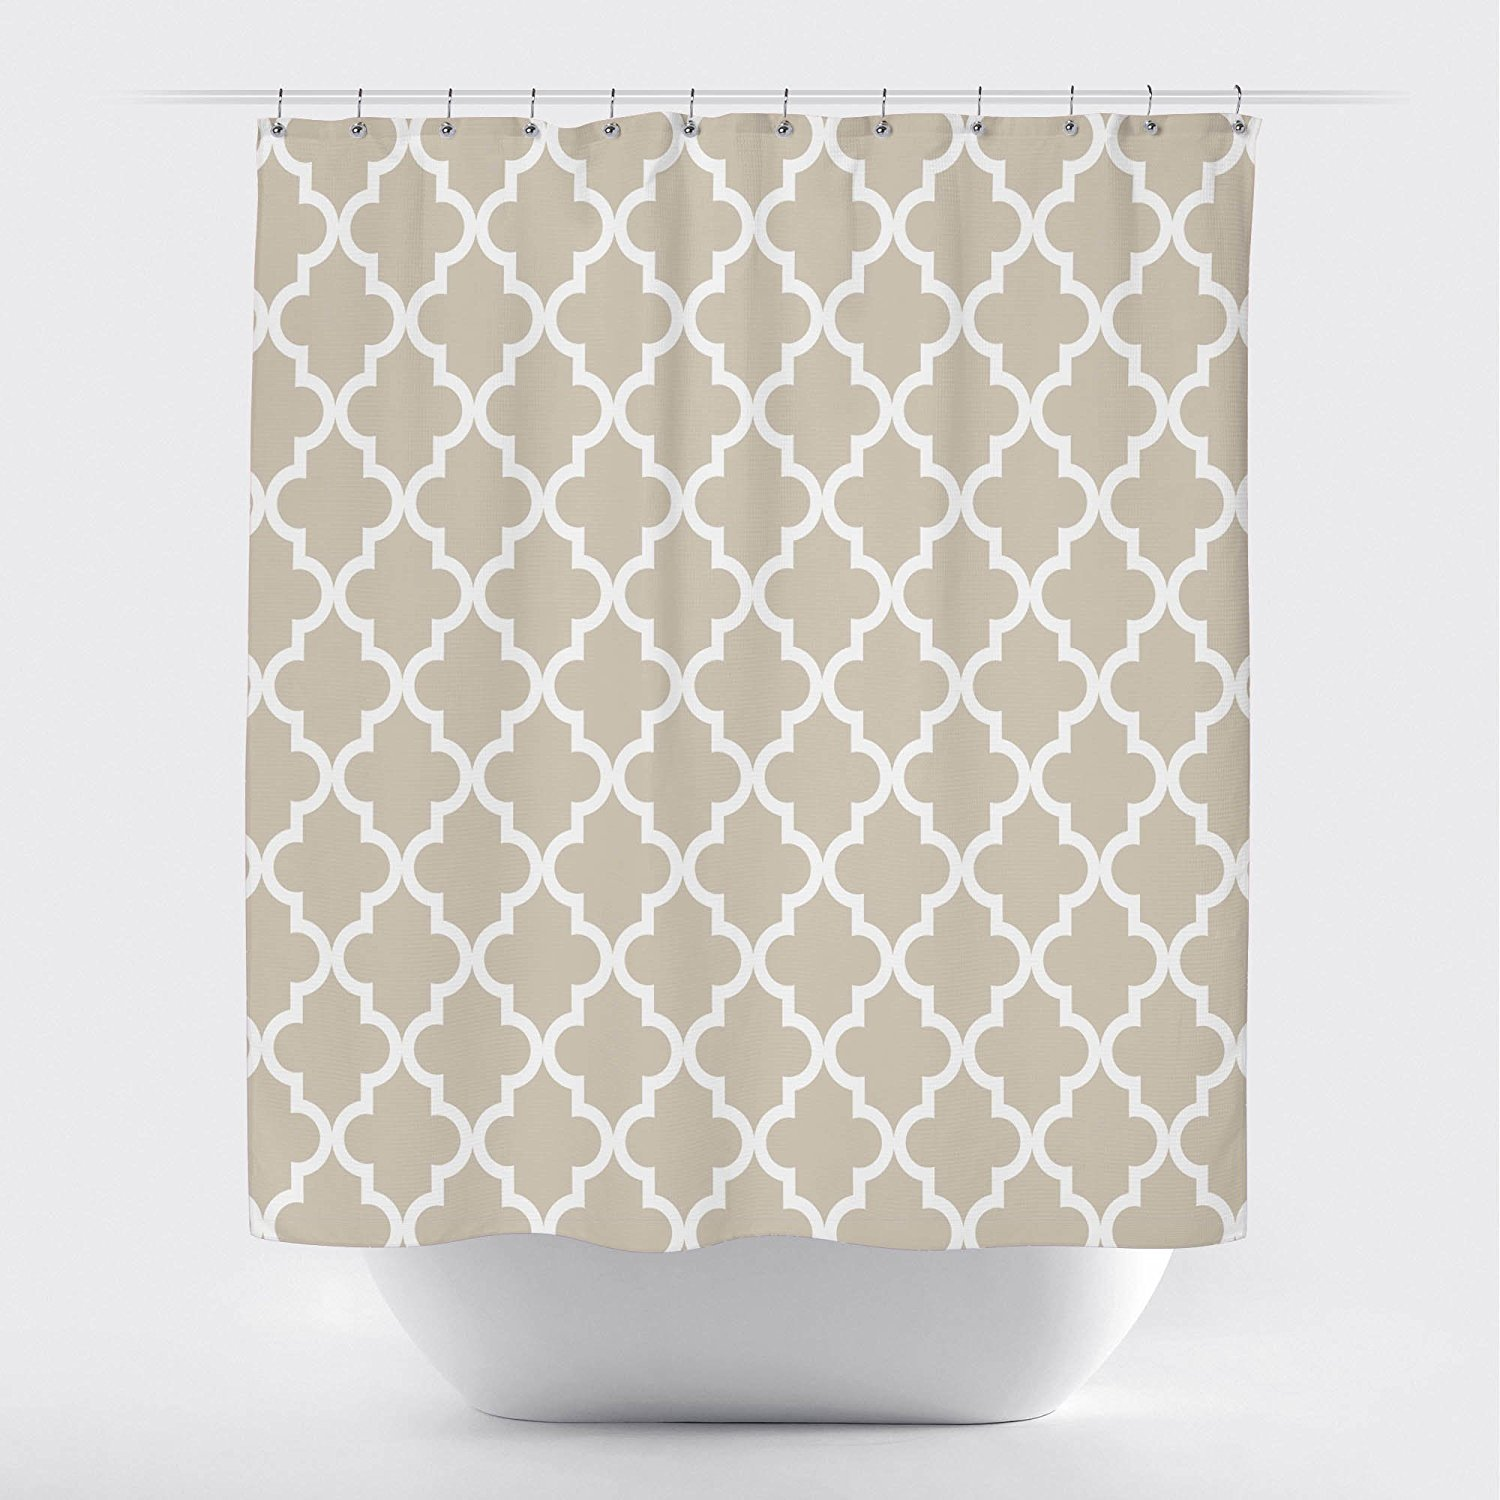 Studios Scalloped Shower Curtain, Small White on Tan by Crystal Emotion